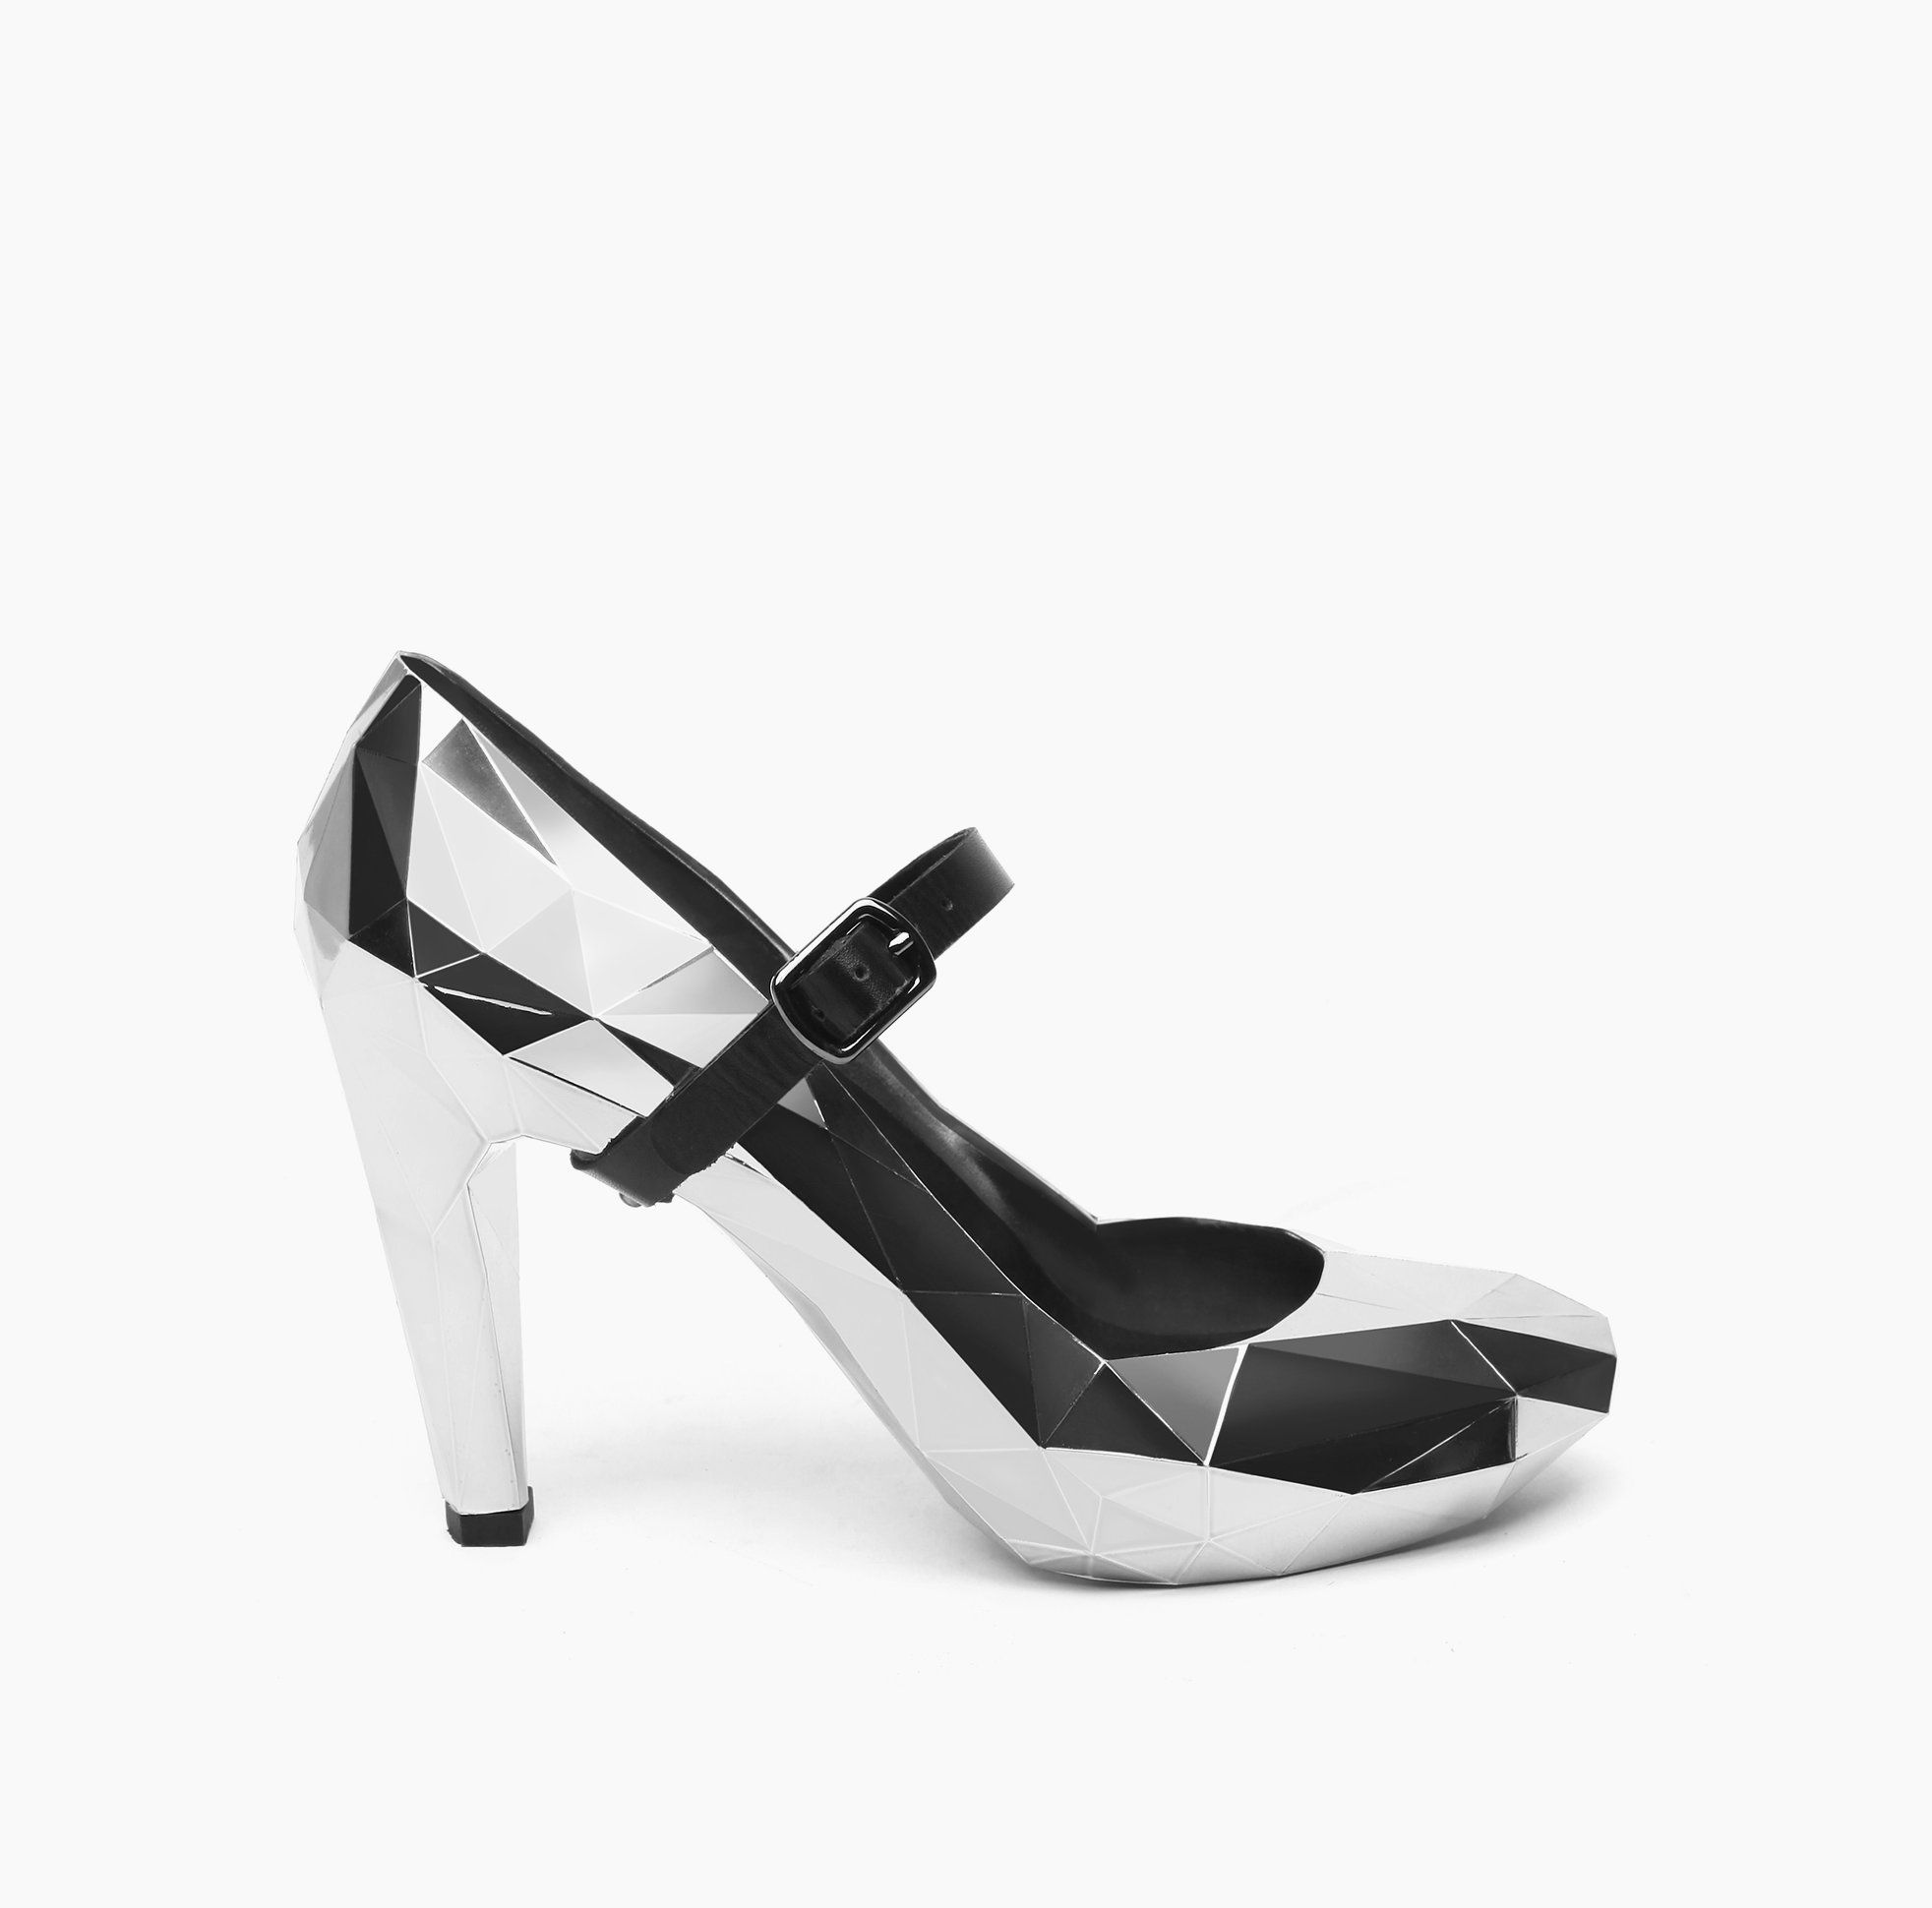 Shoes UNITED NUDE - Lo Res Pump 1002914121 Steel Chrome